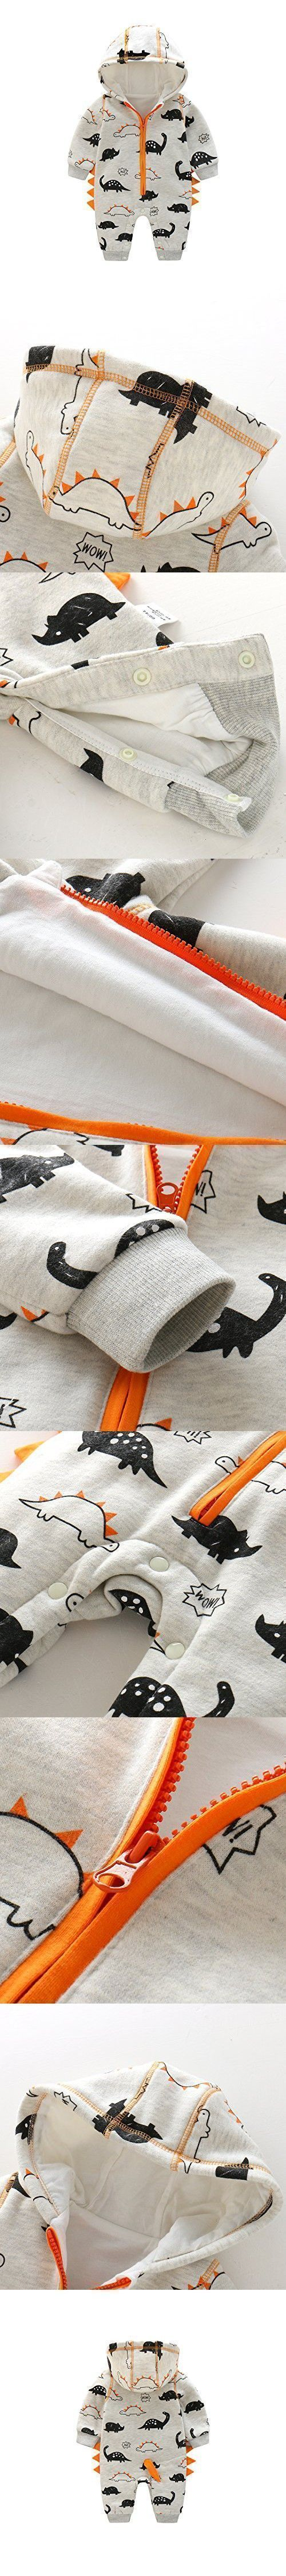 Newborn Baby Boy Baby Girl Unisex Clothes Long Sleeve Dinosaur Hoodies Winter Warm Romper outfit 3-6 months #babyboyhoodies #babygirlhoodie #babyboylongsleeve #babygirlhoodies #babyhoodies #babyboyoutfits #boyoutfits